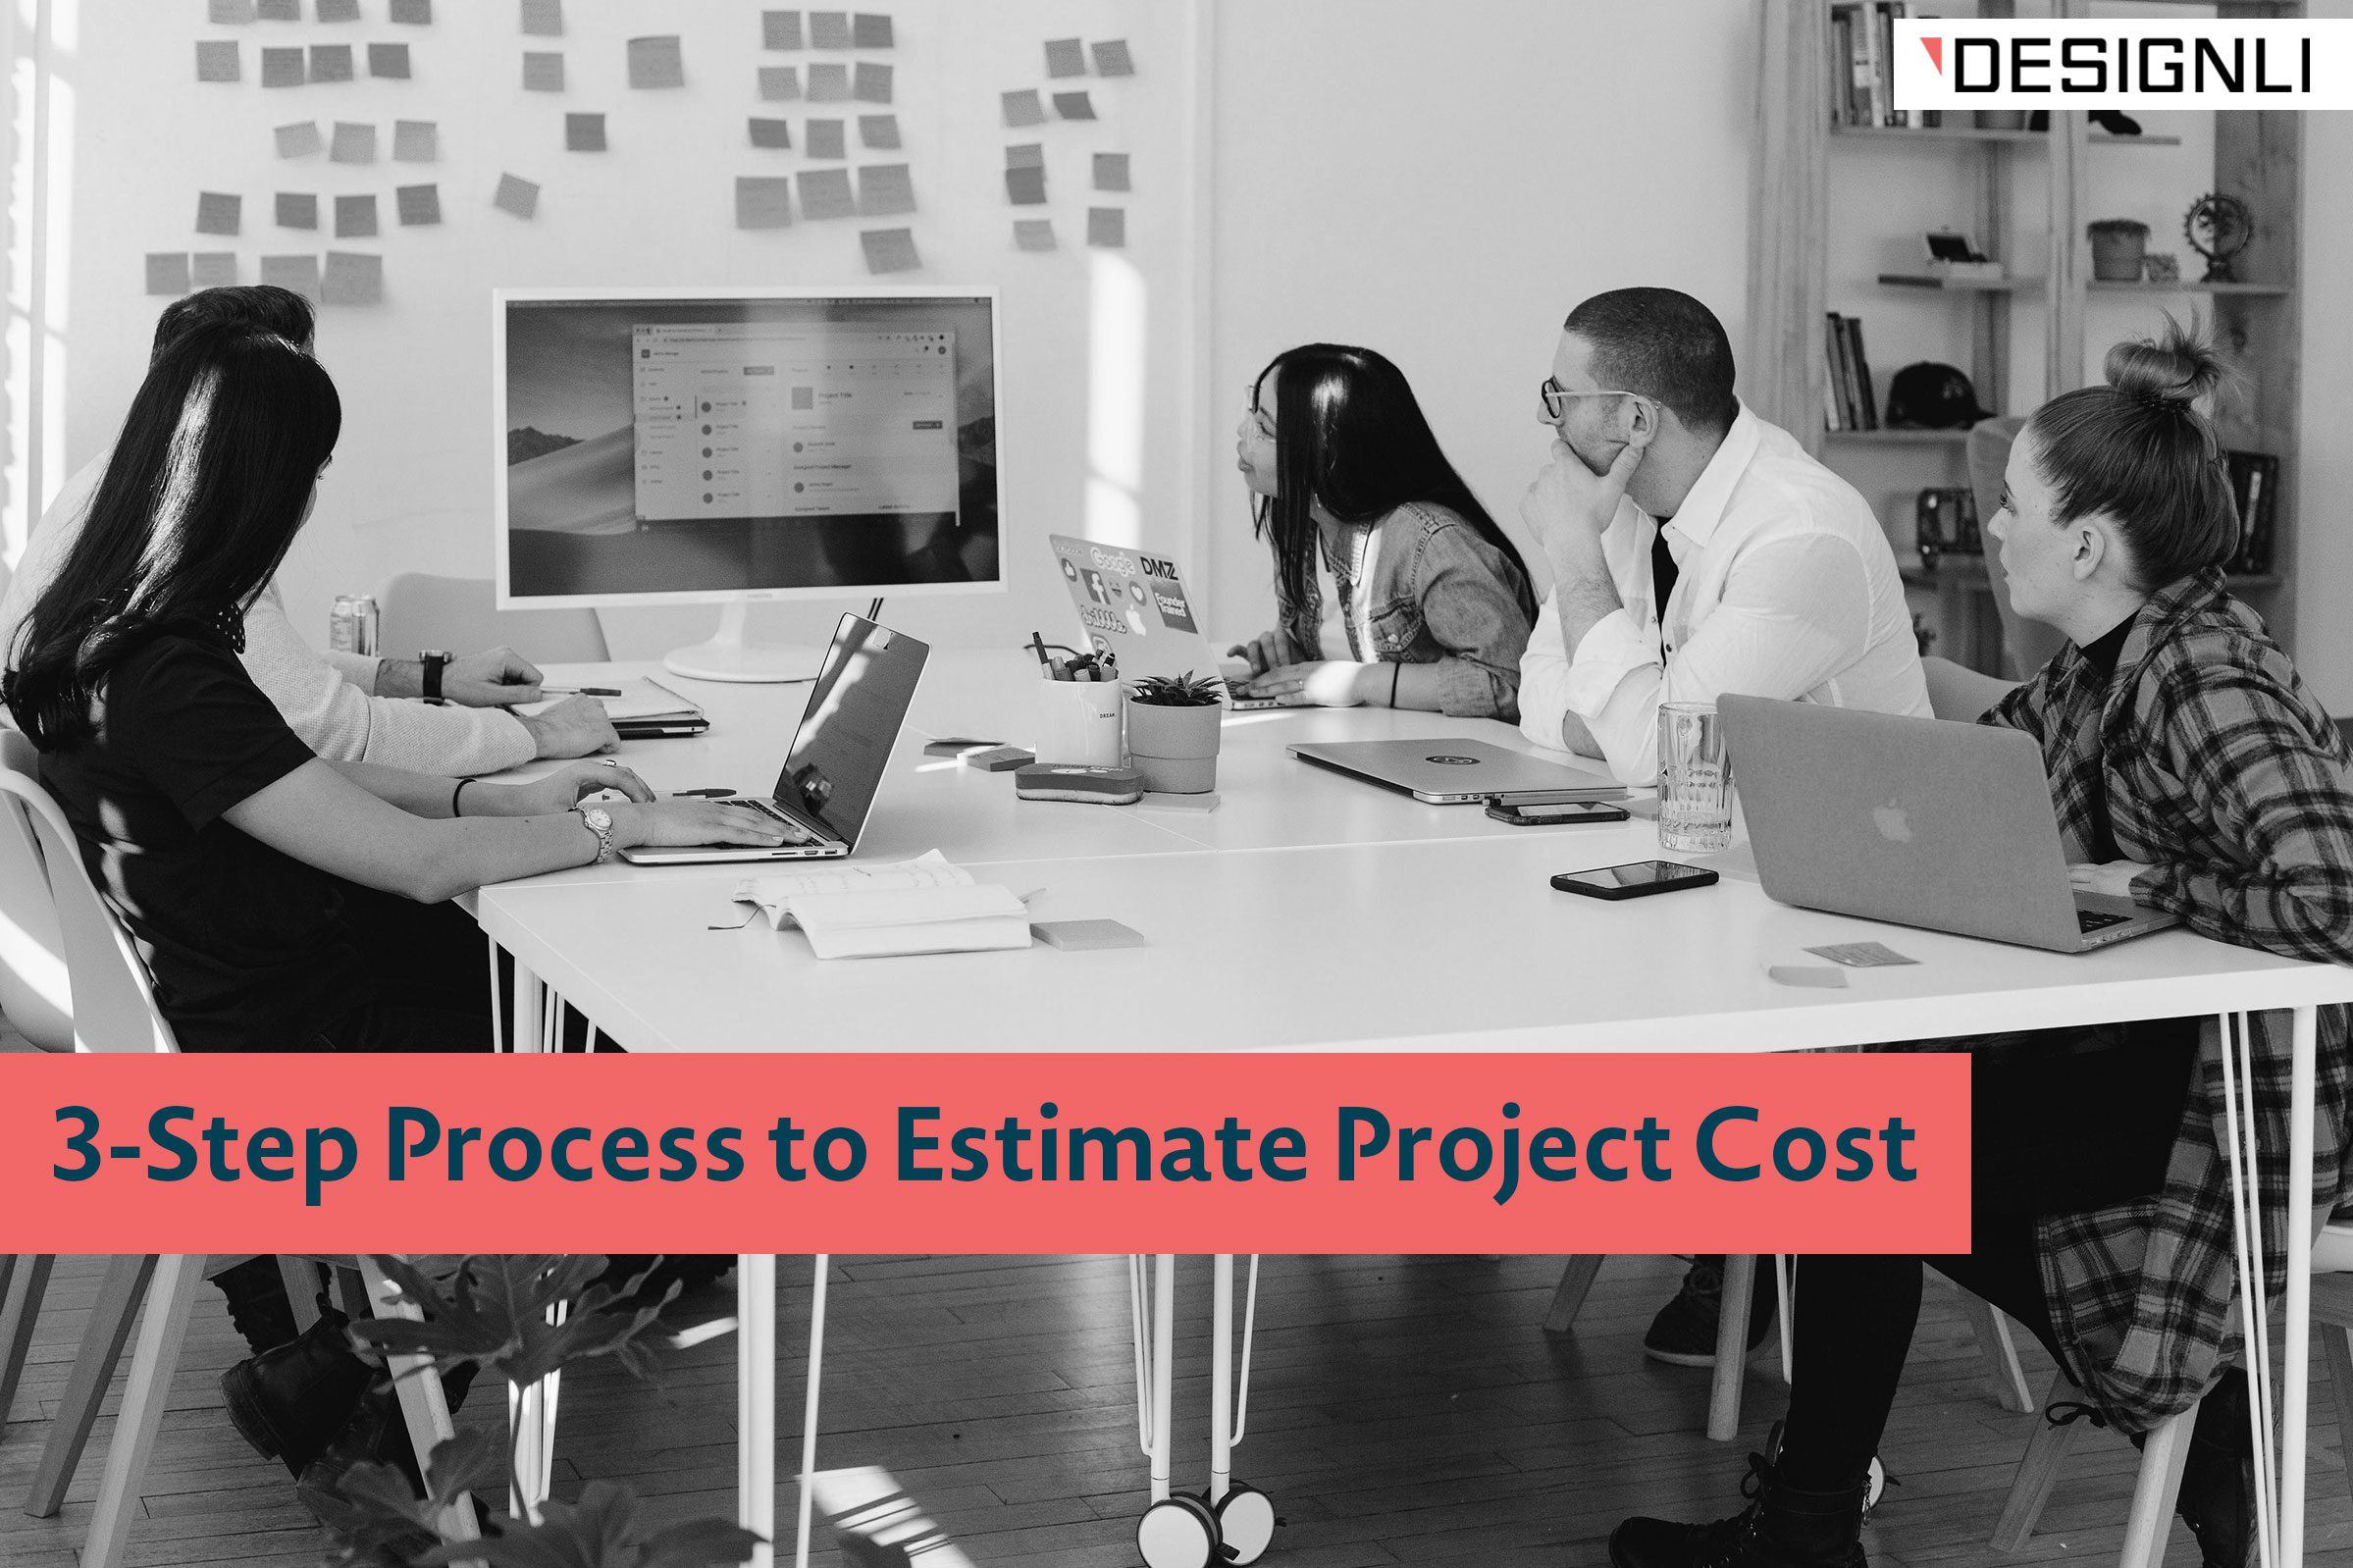 estimate project cost